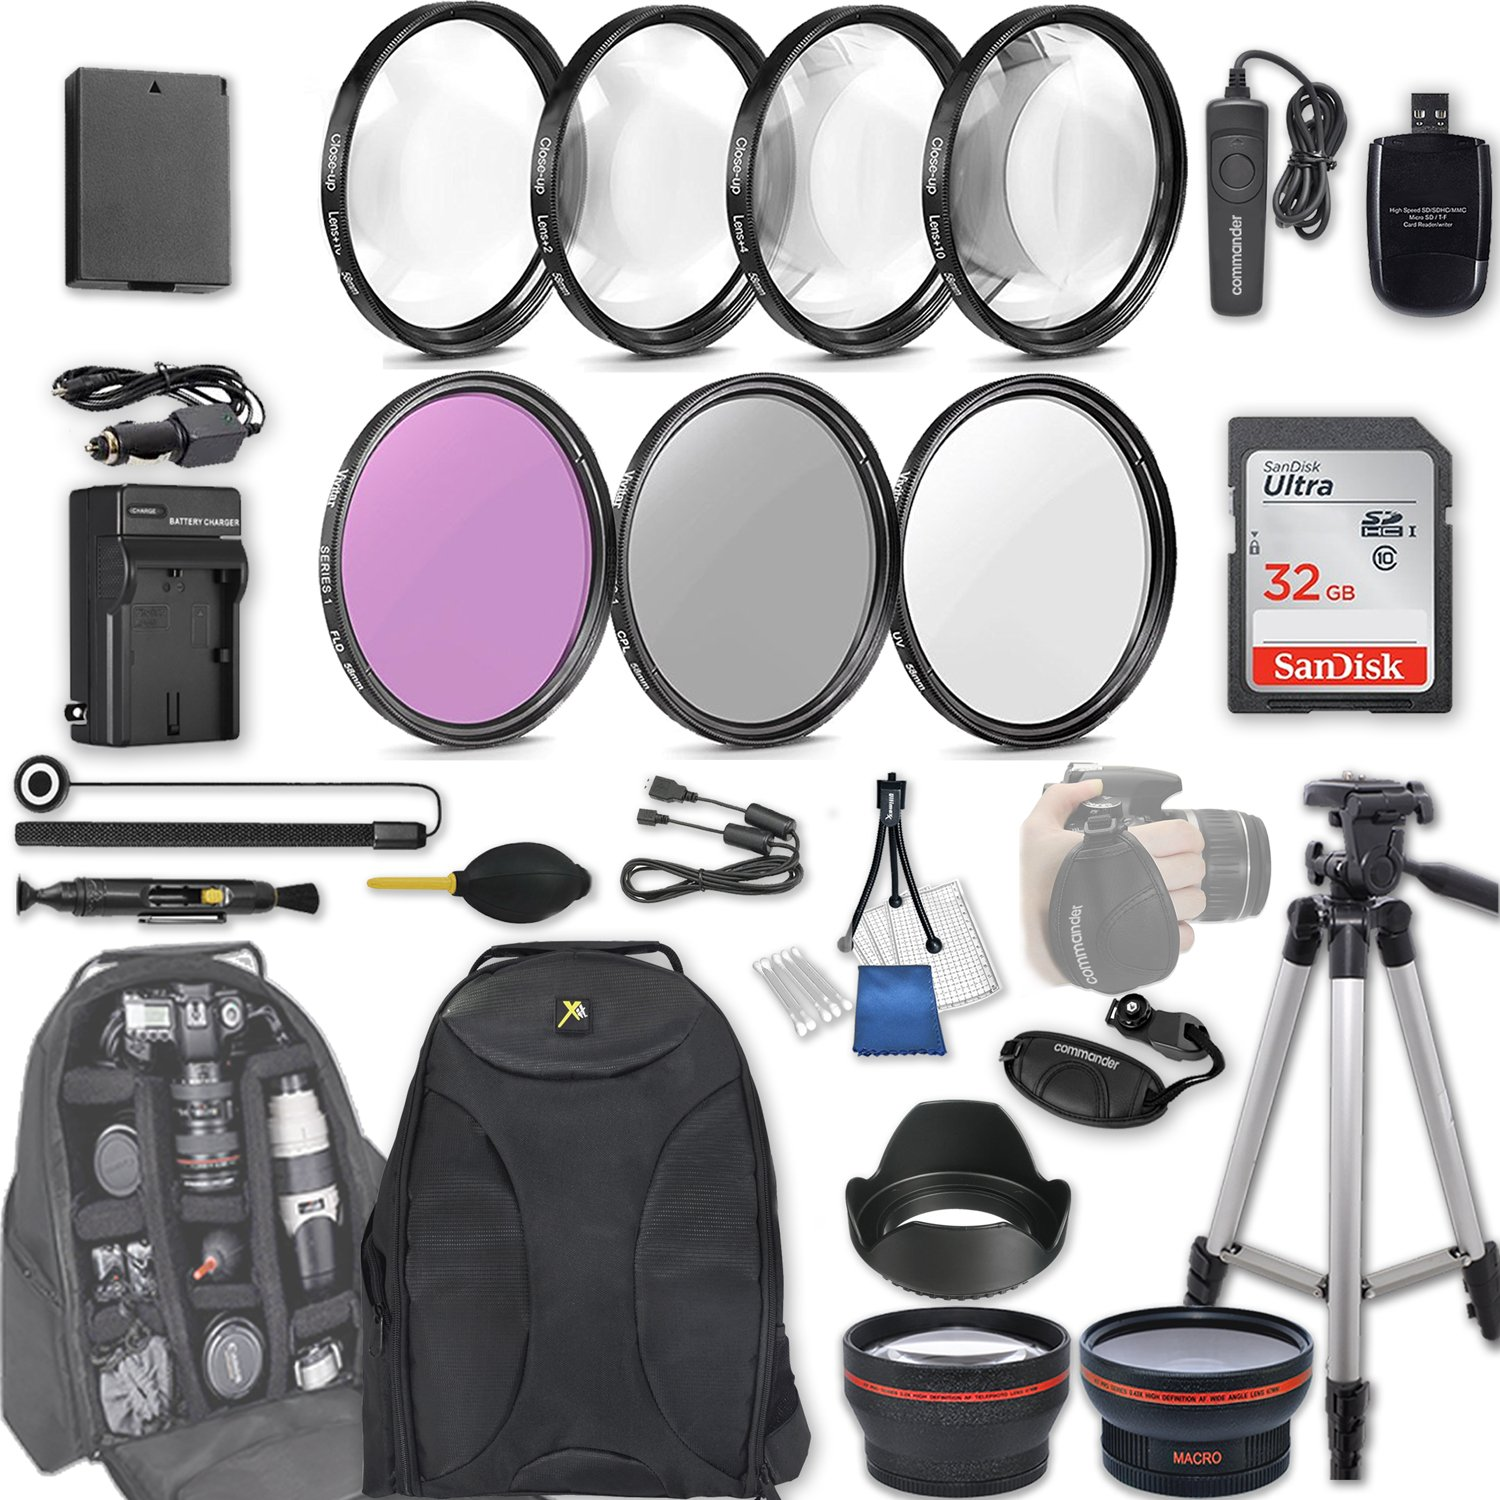 58mm 28 Pc Accessory Kit for Canon EOS Rebel T6, T5, T3, 1300D, 1200D, 1100D DSLRs with 0.43x Wide Angle Lens, 2.2x Telephoto Lens, 32GB Sandisk SD, Filter & Macro Kits, Backpack Case, and More by 33rd Street